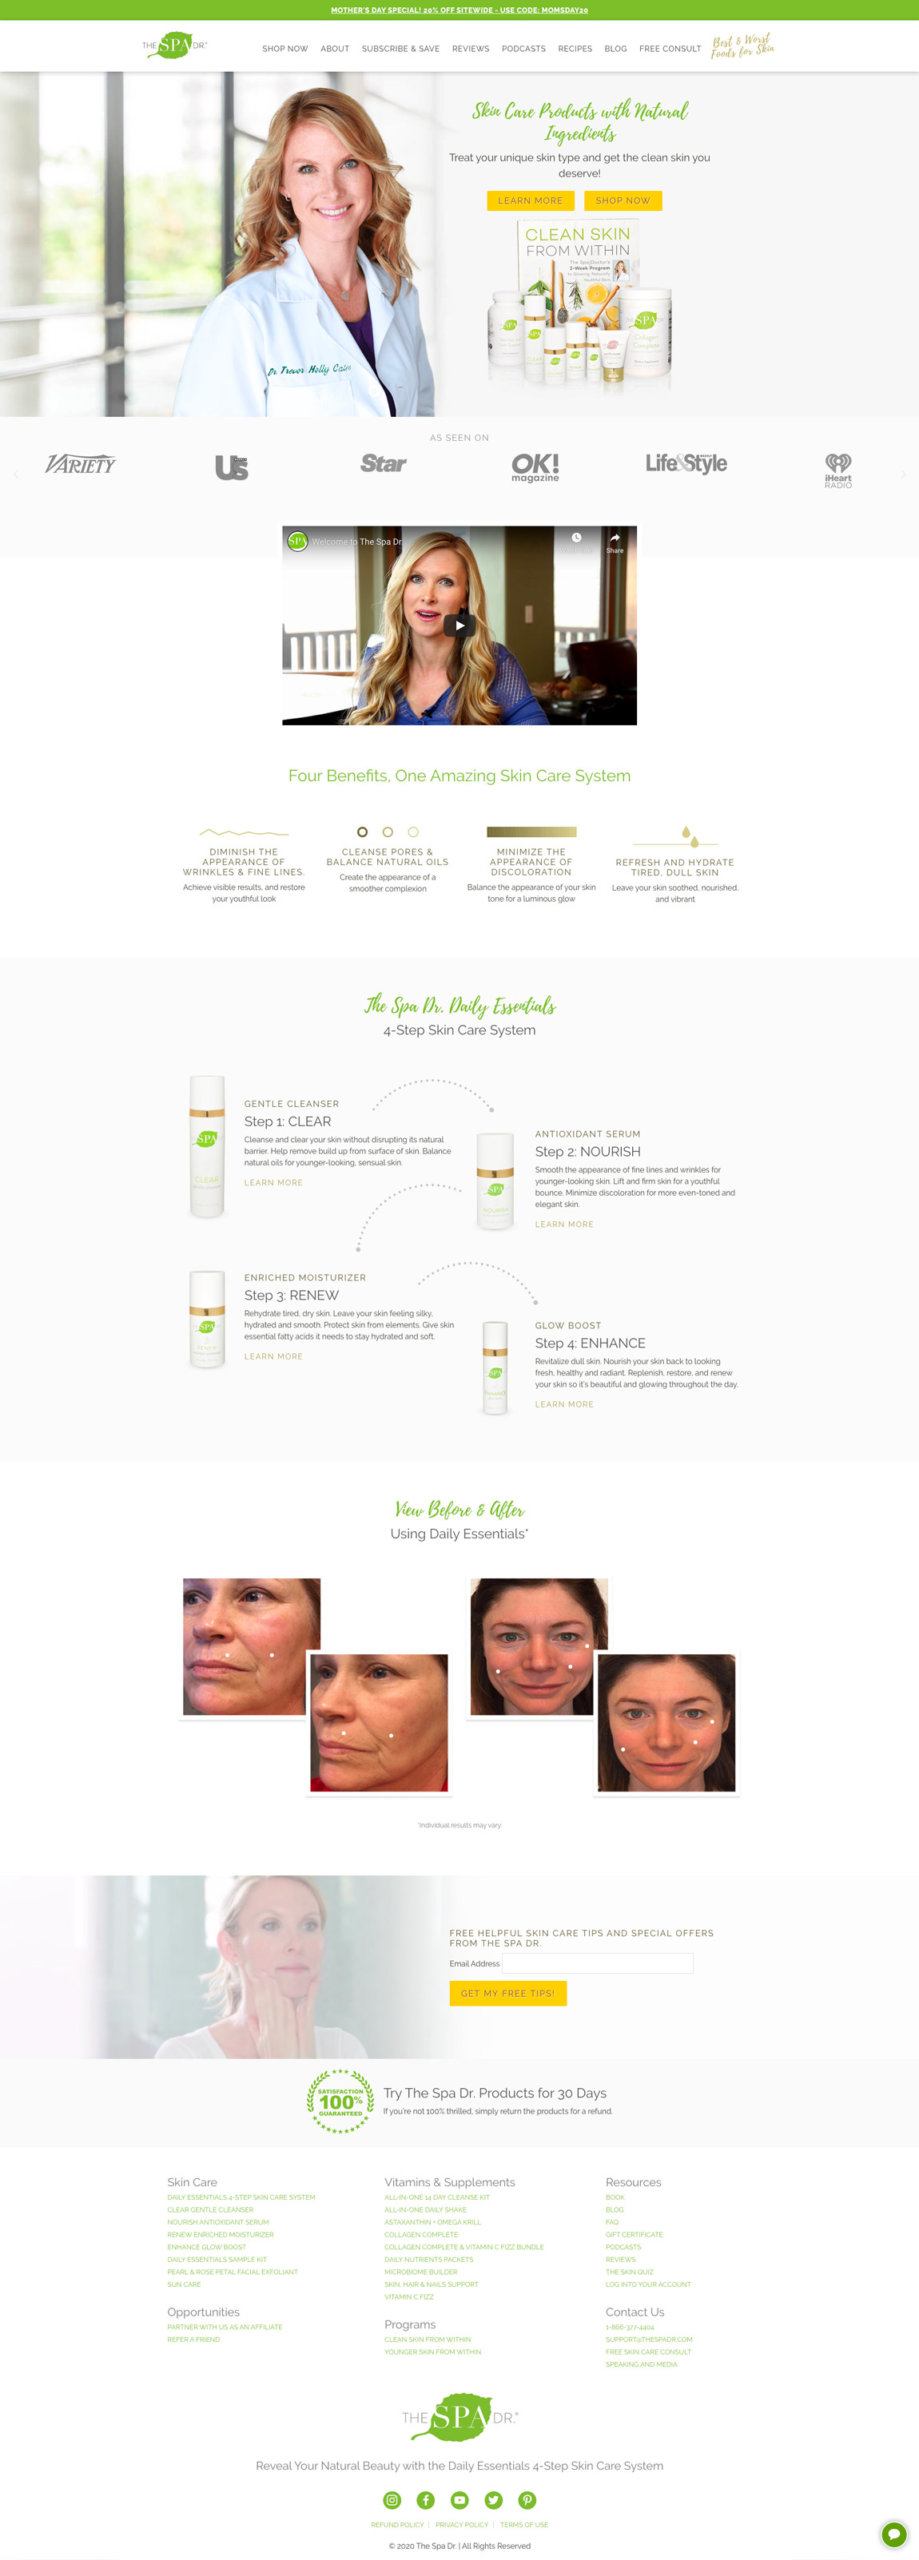 The Spa Dr. Web Design Concept